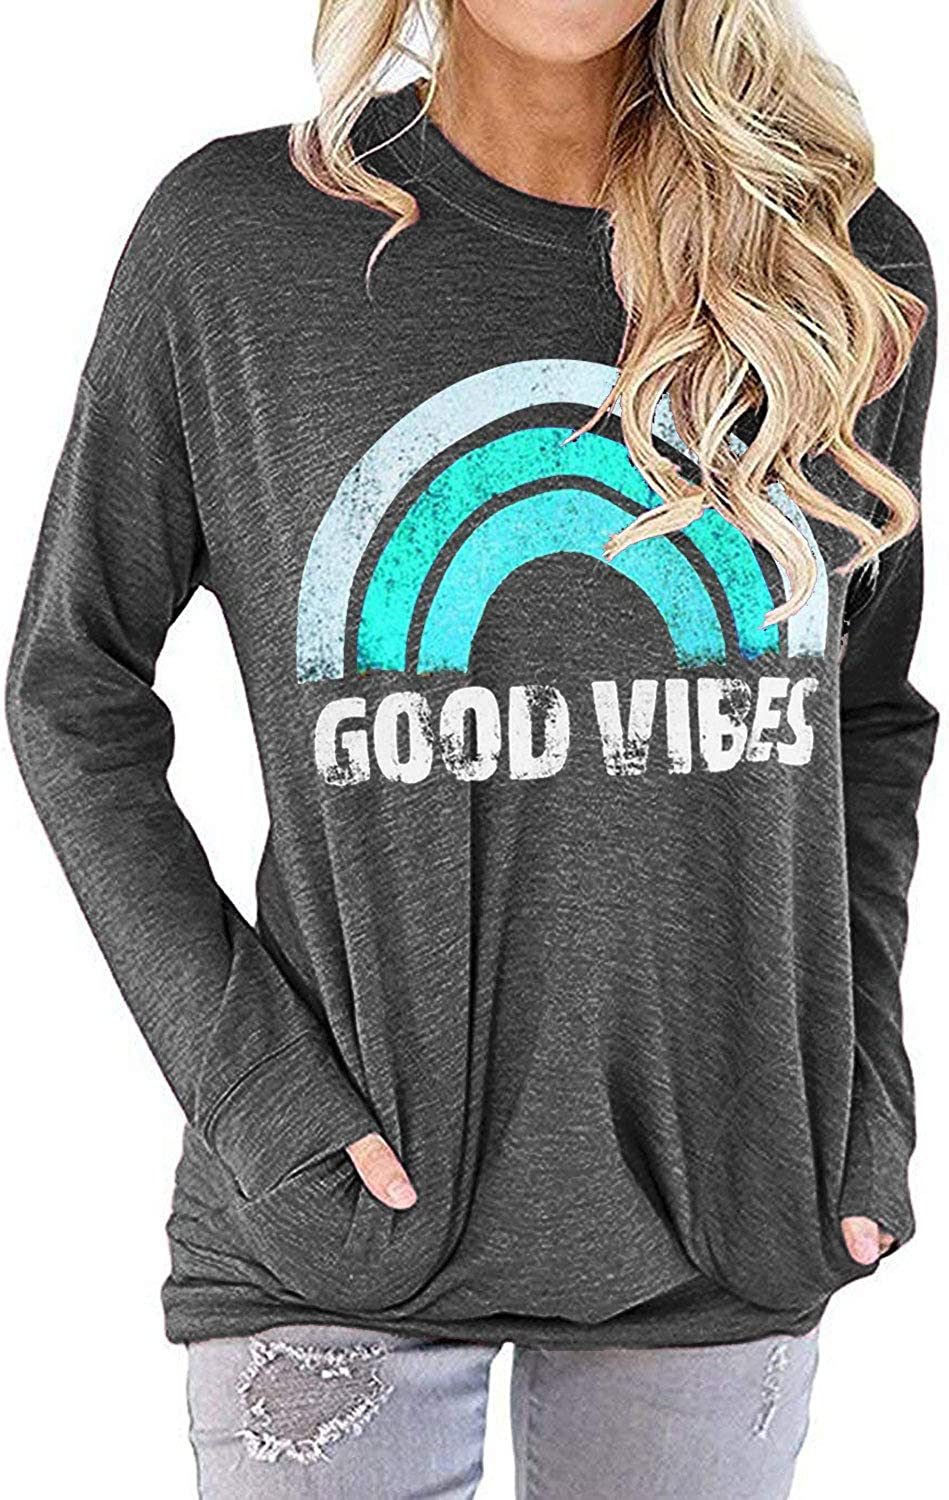 Nlife Women Good Vibes Blouse Hoodies Long Sleeve Casual Tank Tops Graphic Tee Shirt Sweaters for Women